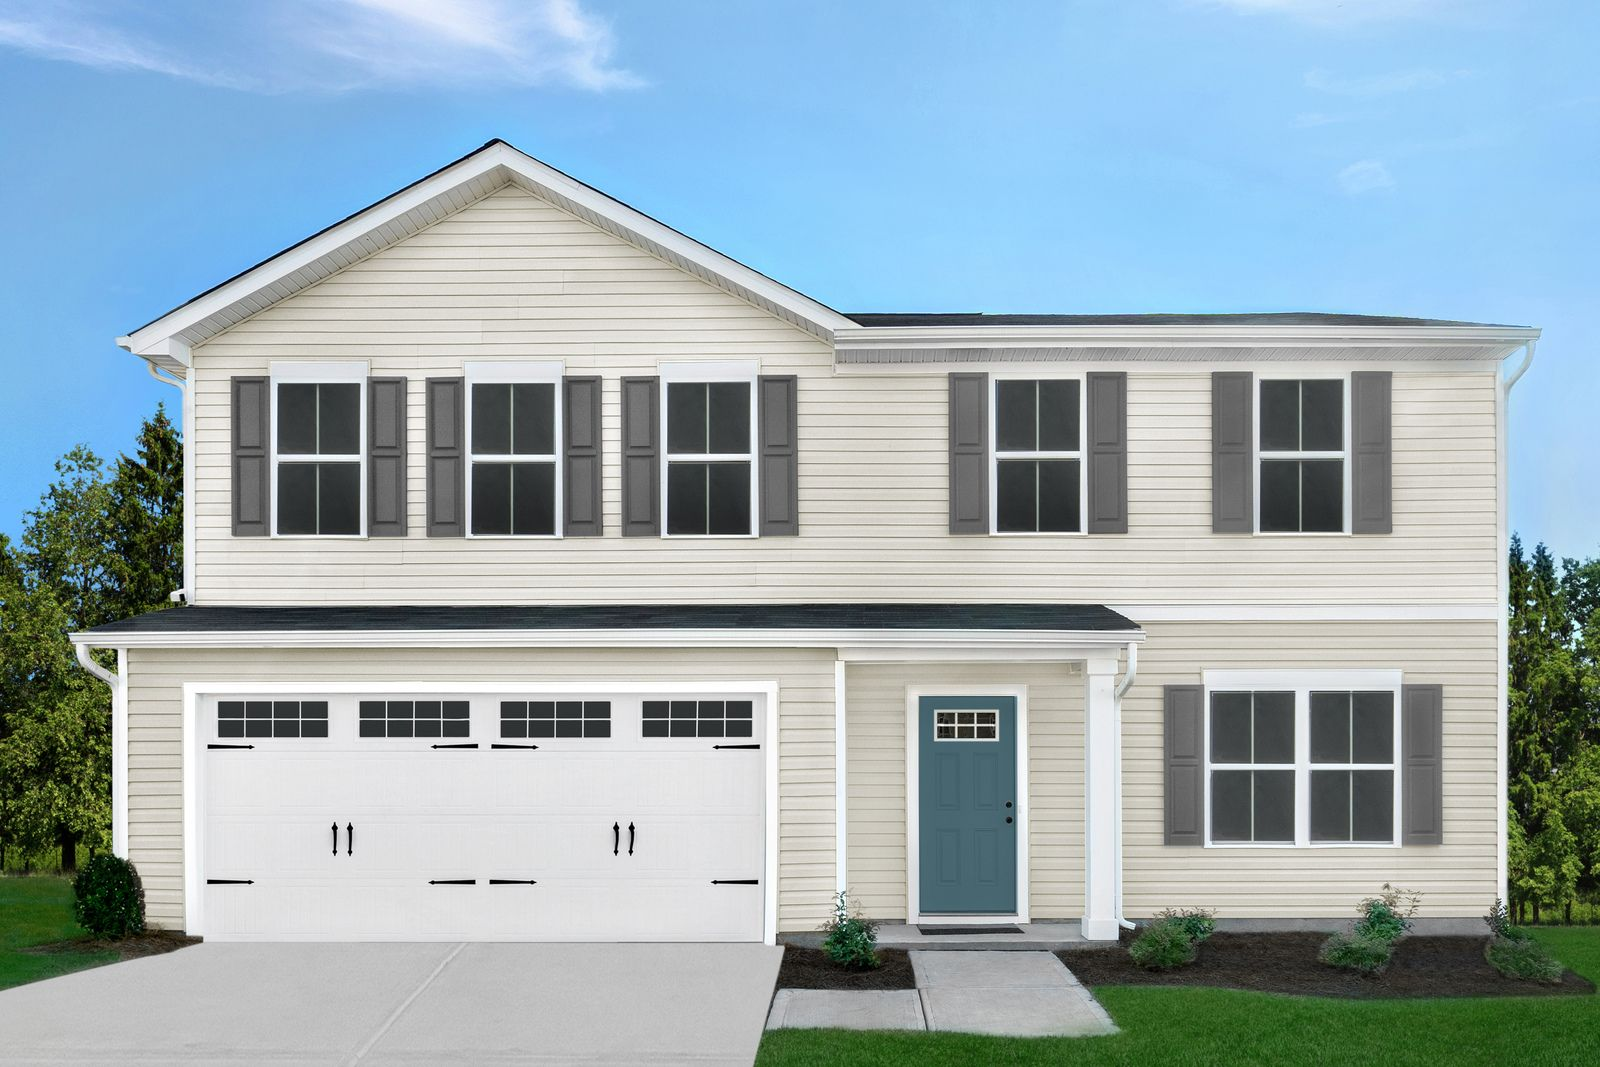 WELCOME HOME TO HIDDEN LAKES 2-STORY:Best-priced new homes in Springfield area—Lakemore. From the lower $200s! Community pavilion, playground, & dog park. Appliances included!Schedule your visit today!